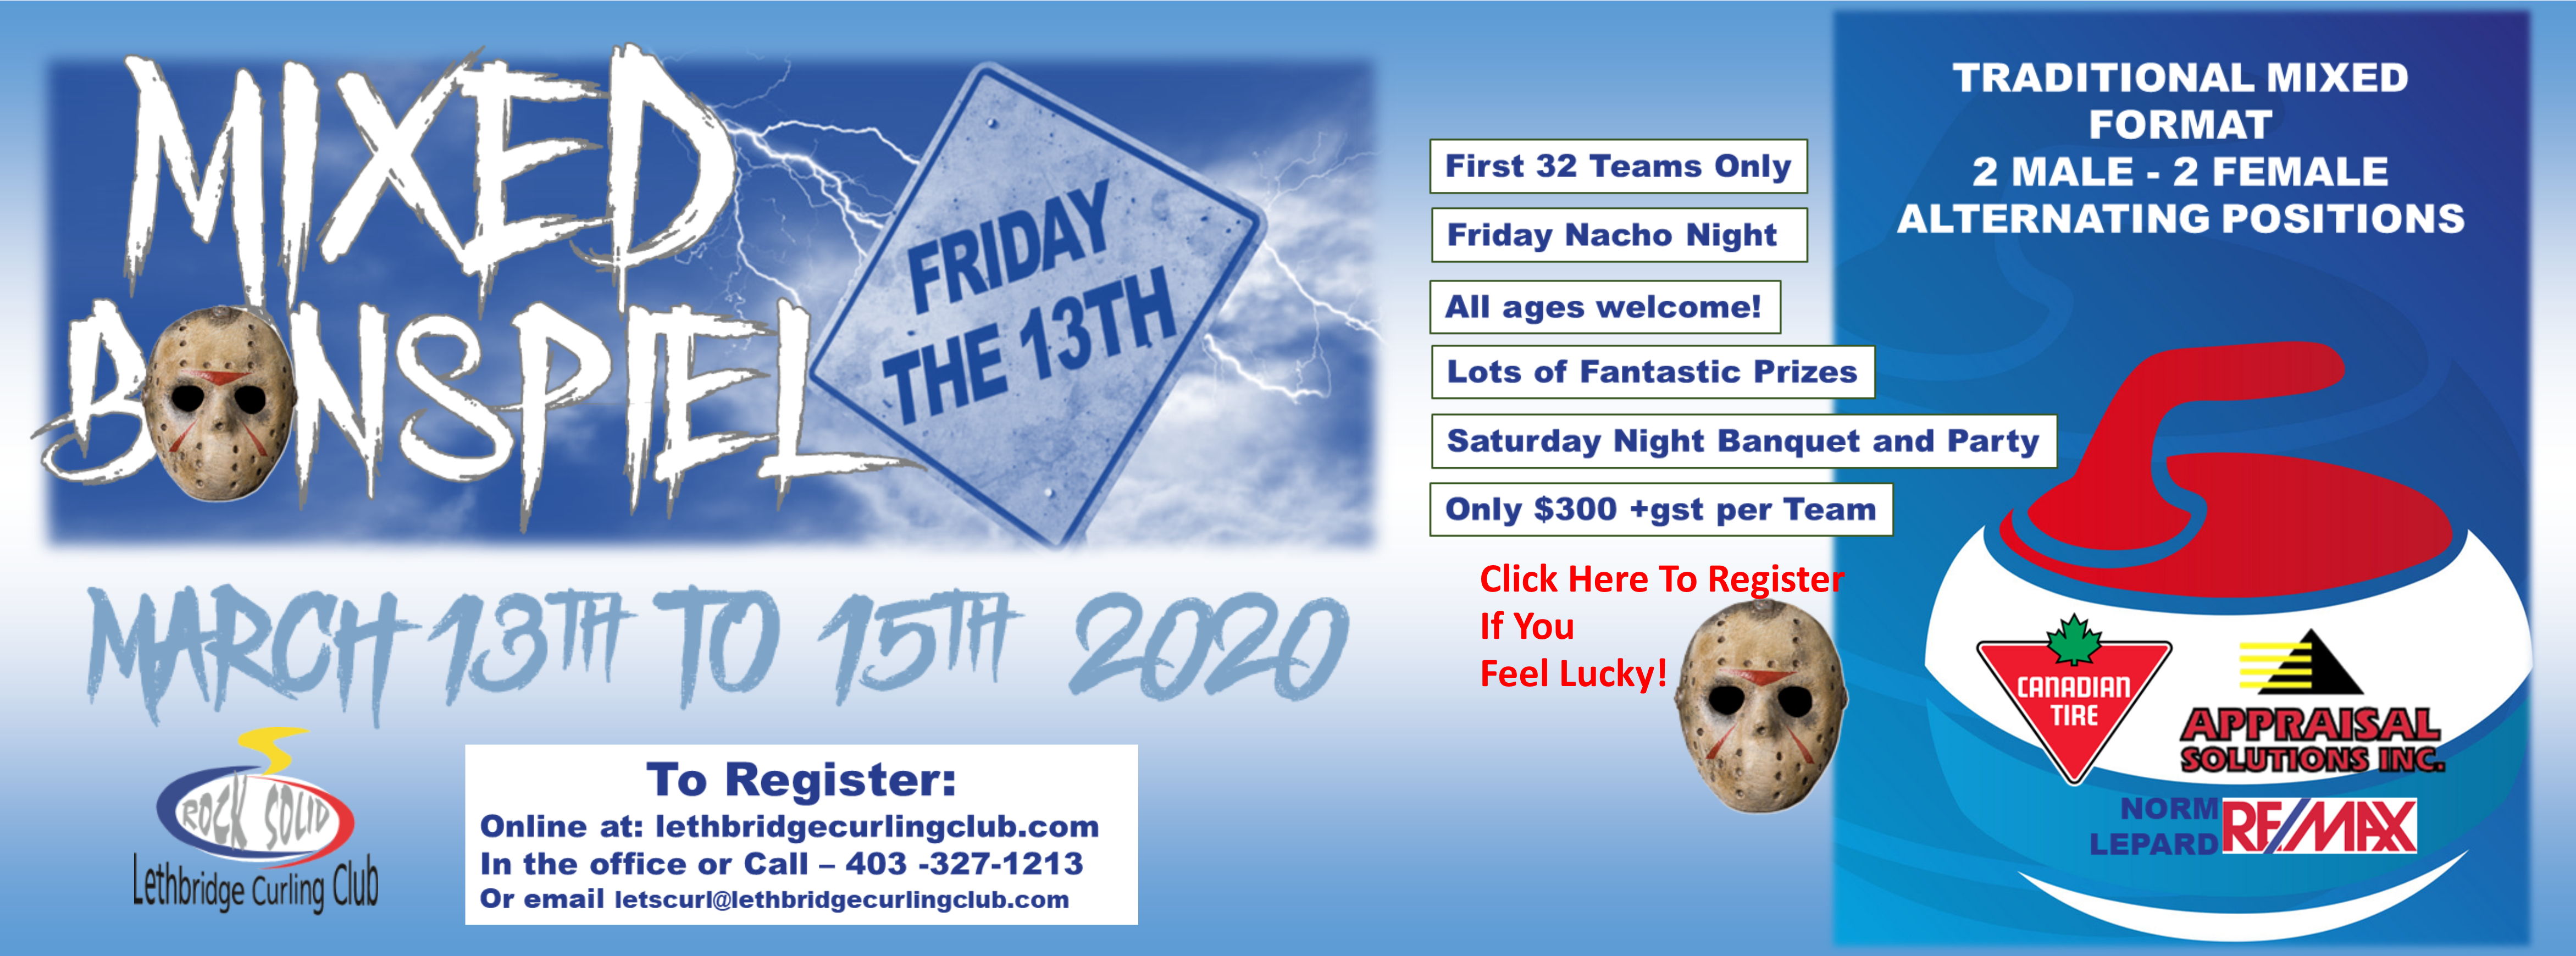 <div id=slideshow_title>Year End Mixed Bonspiel</div> <br><div style='text-align: left; font-size: 18px;'>The most fun bonspiel of the year. Enter now!</div>